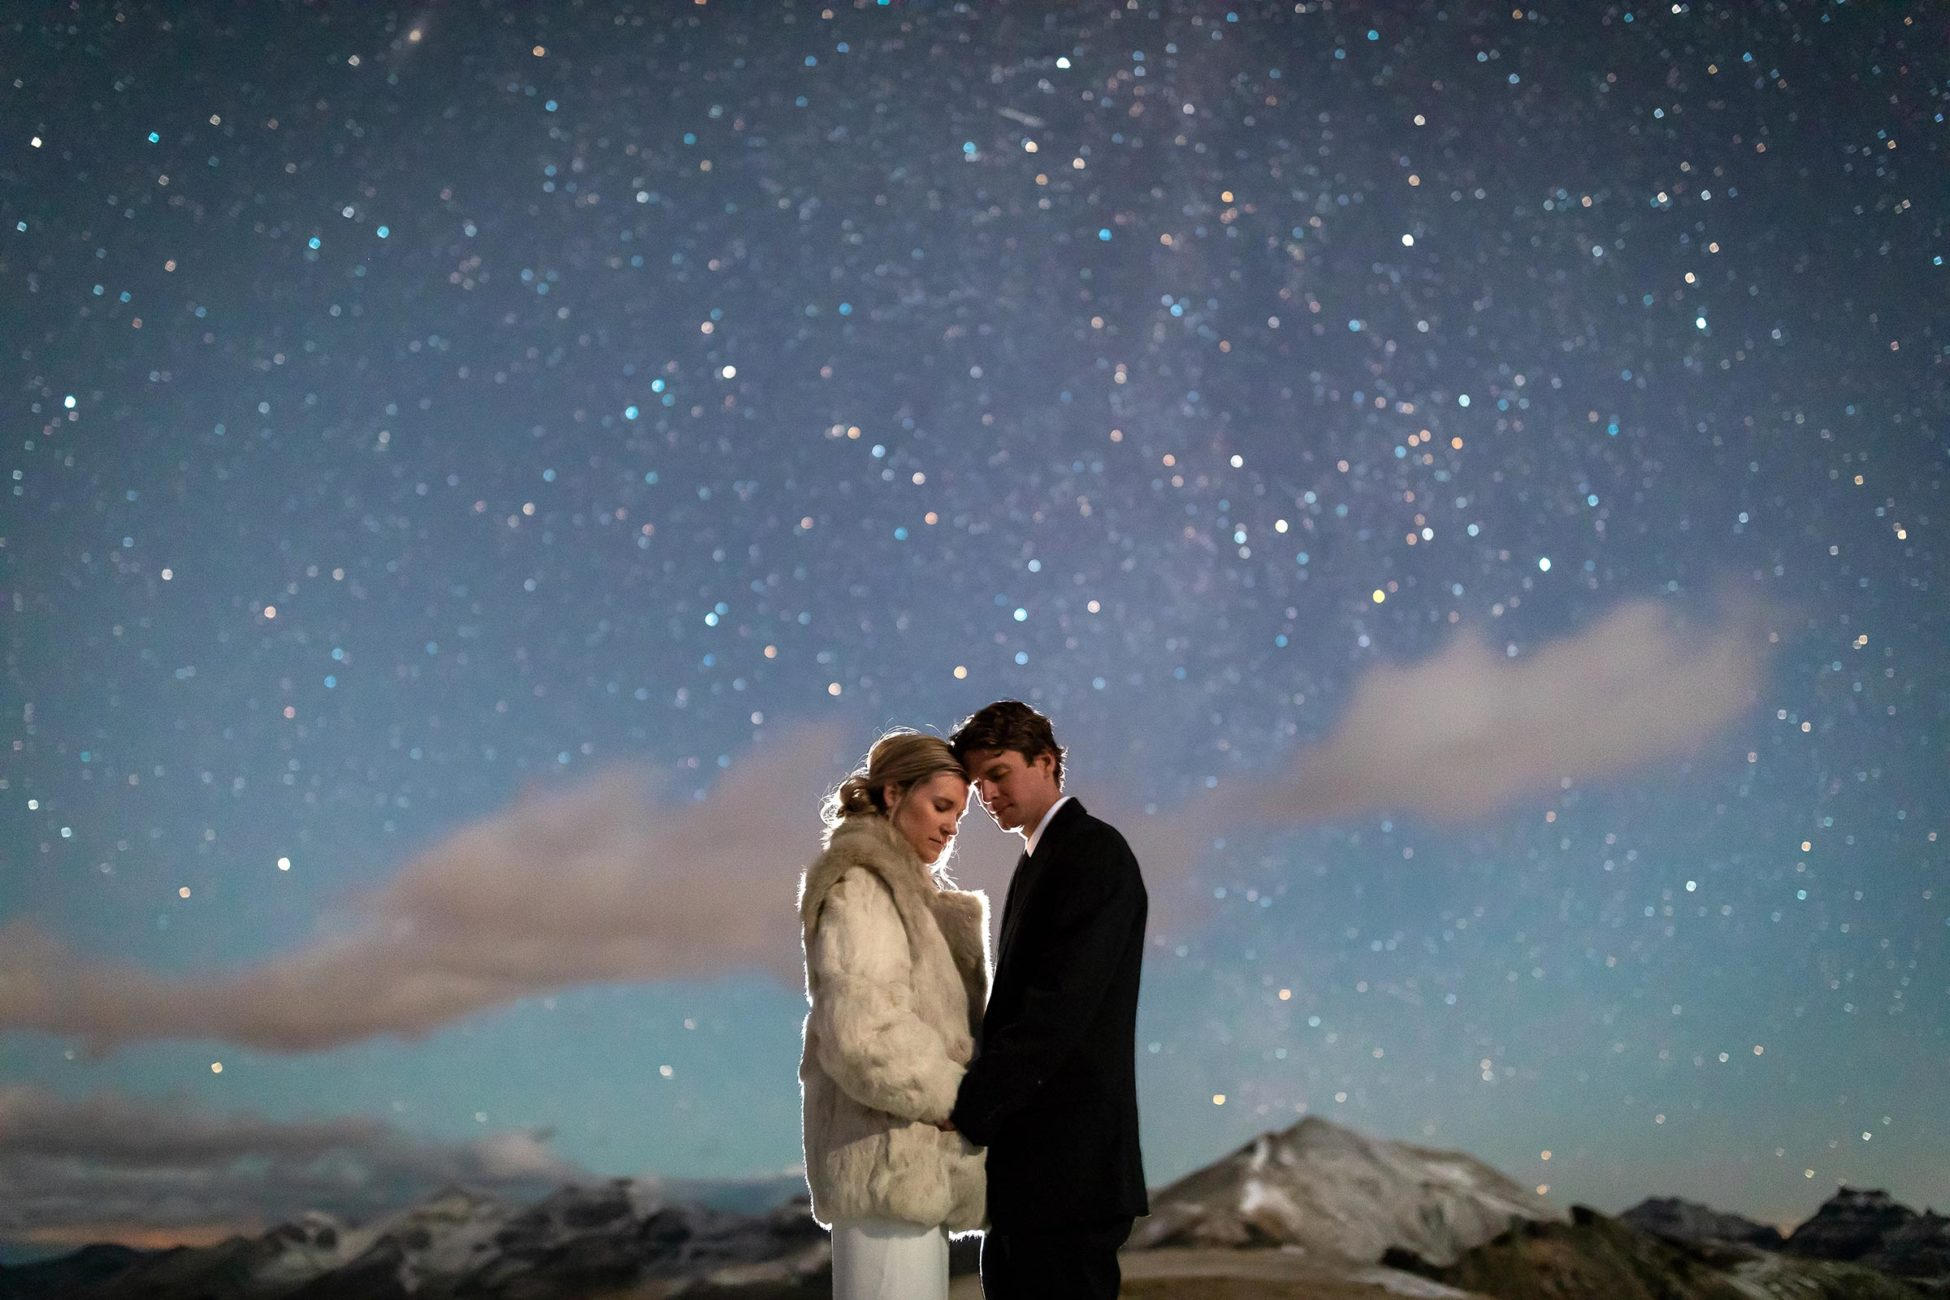 A cold, 5am start for this couple adventure elopement in the mountains of Telluride, Colorado.